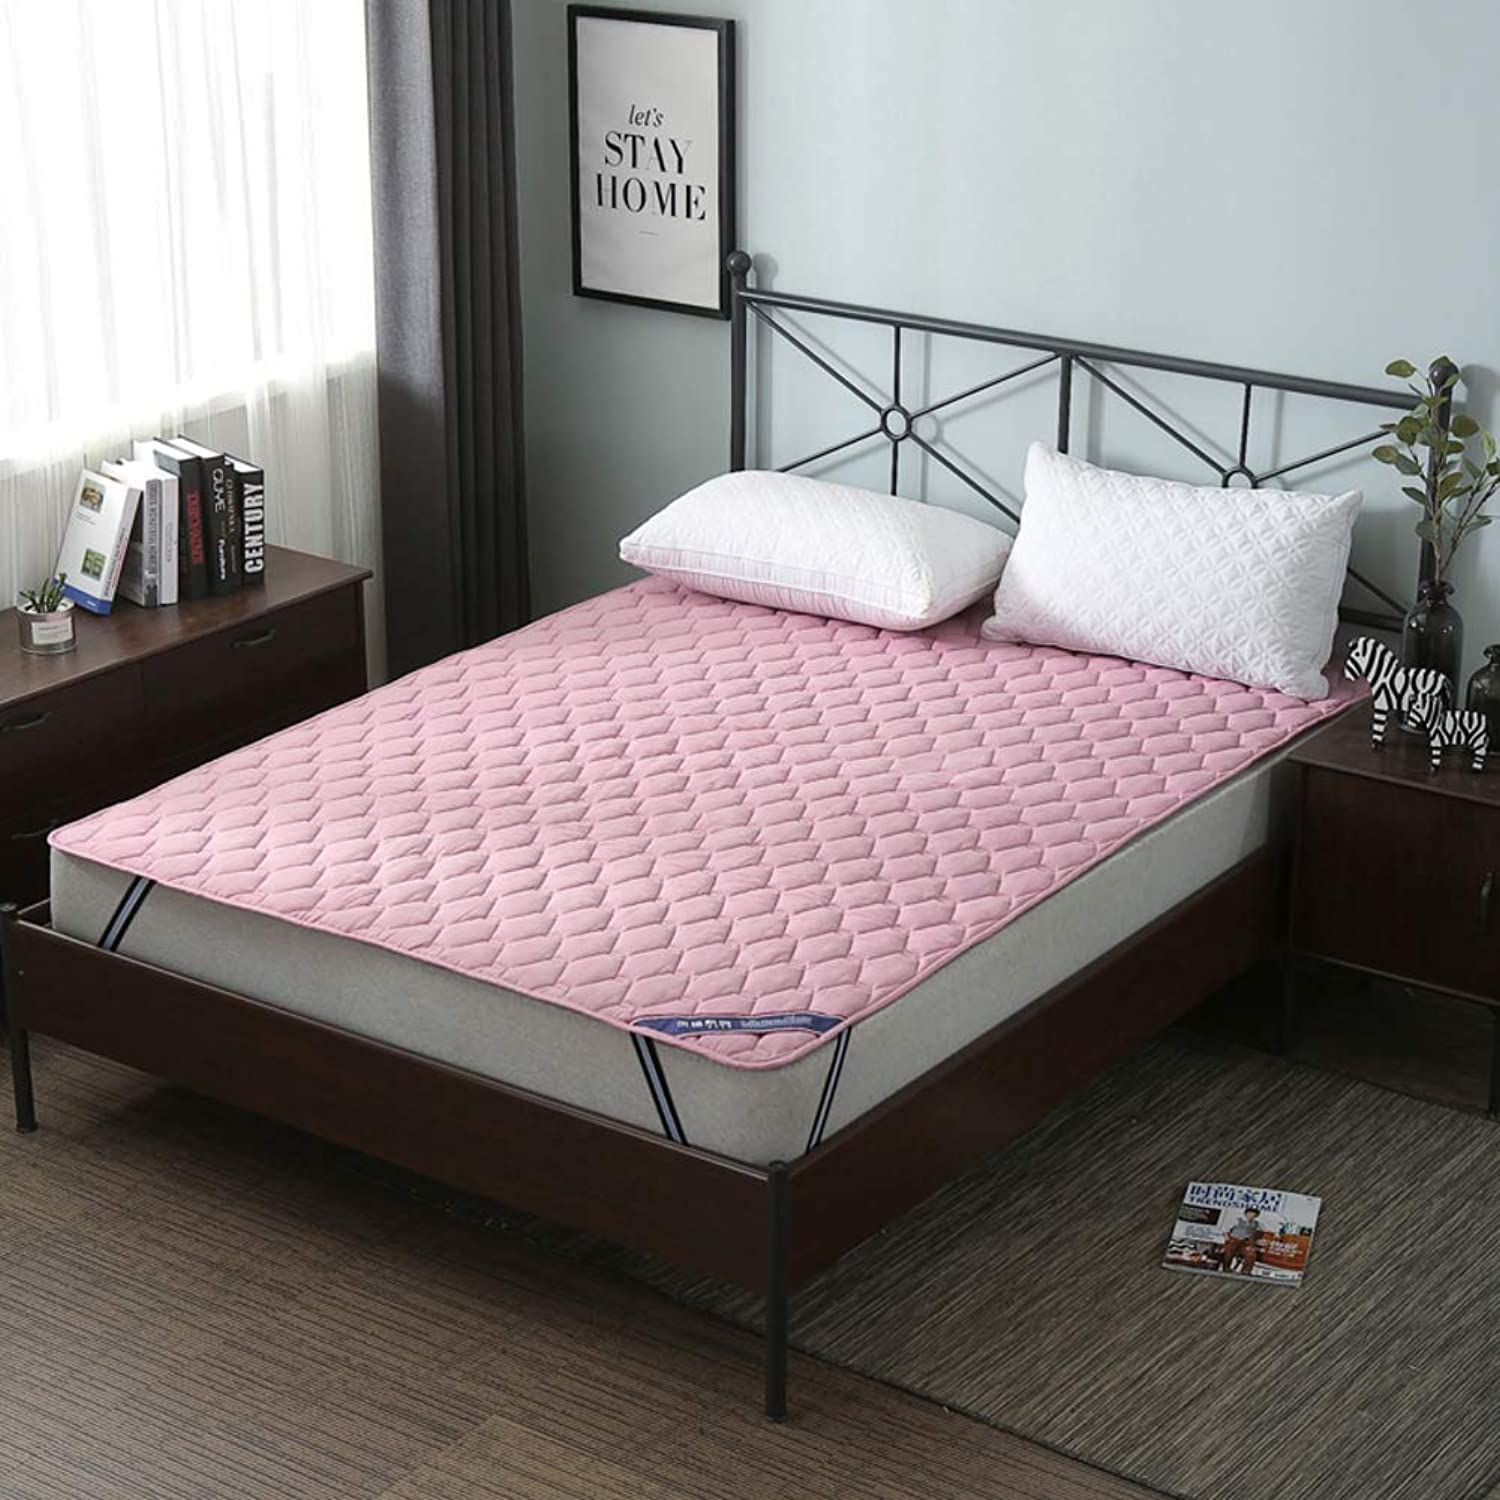 Waterproof Bed Pad,Tatami Bed Mattress,Thin Mattress 100% Cotton Anti-skidding Collapsible for Bedroom-A 120x200cm(47x79inch)